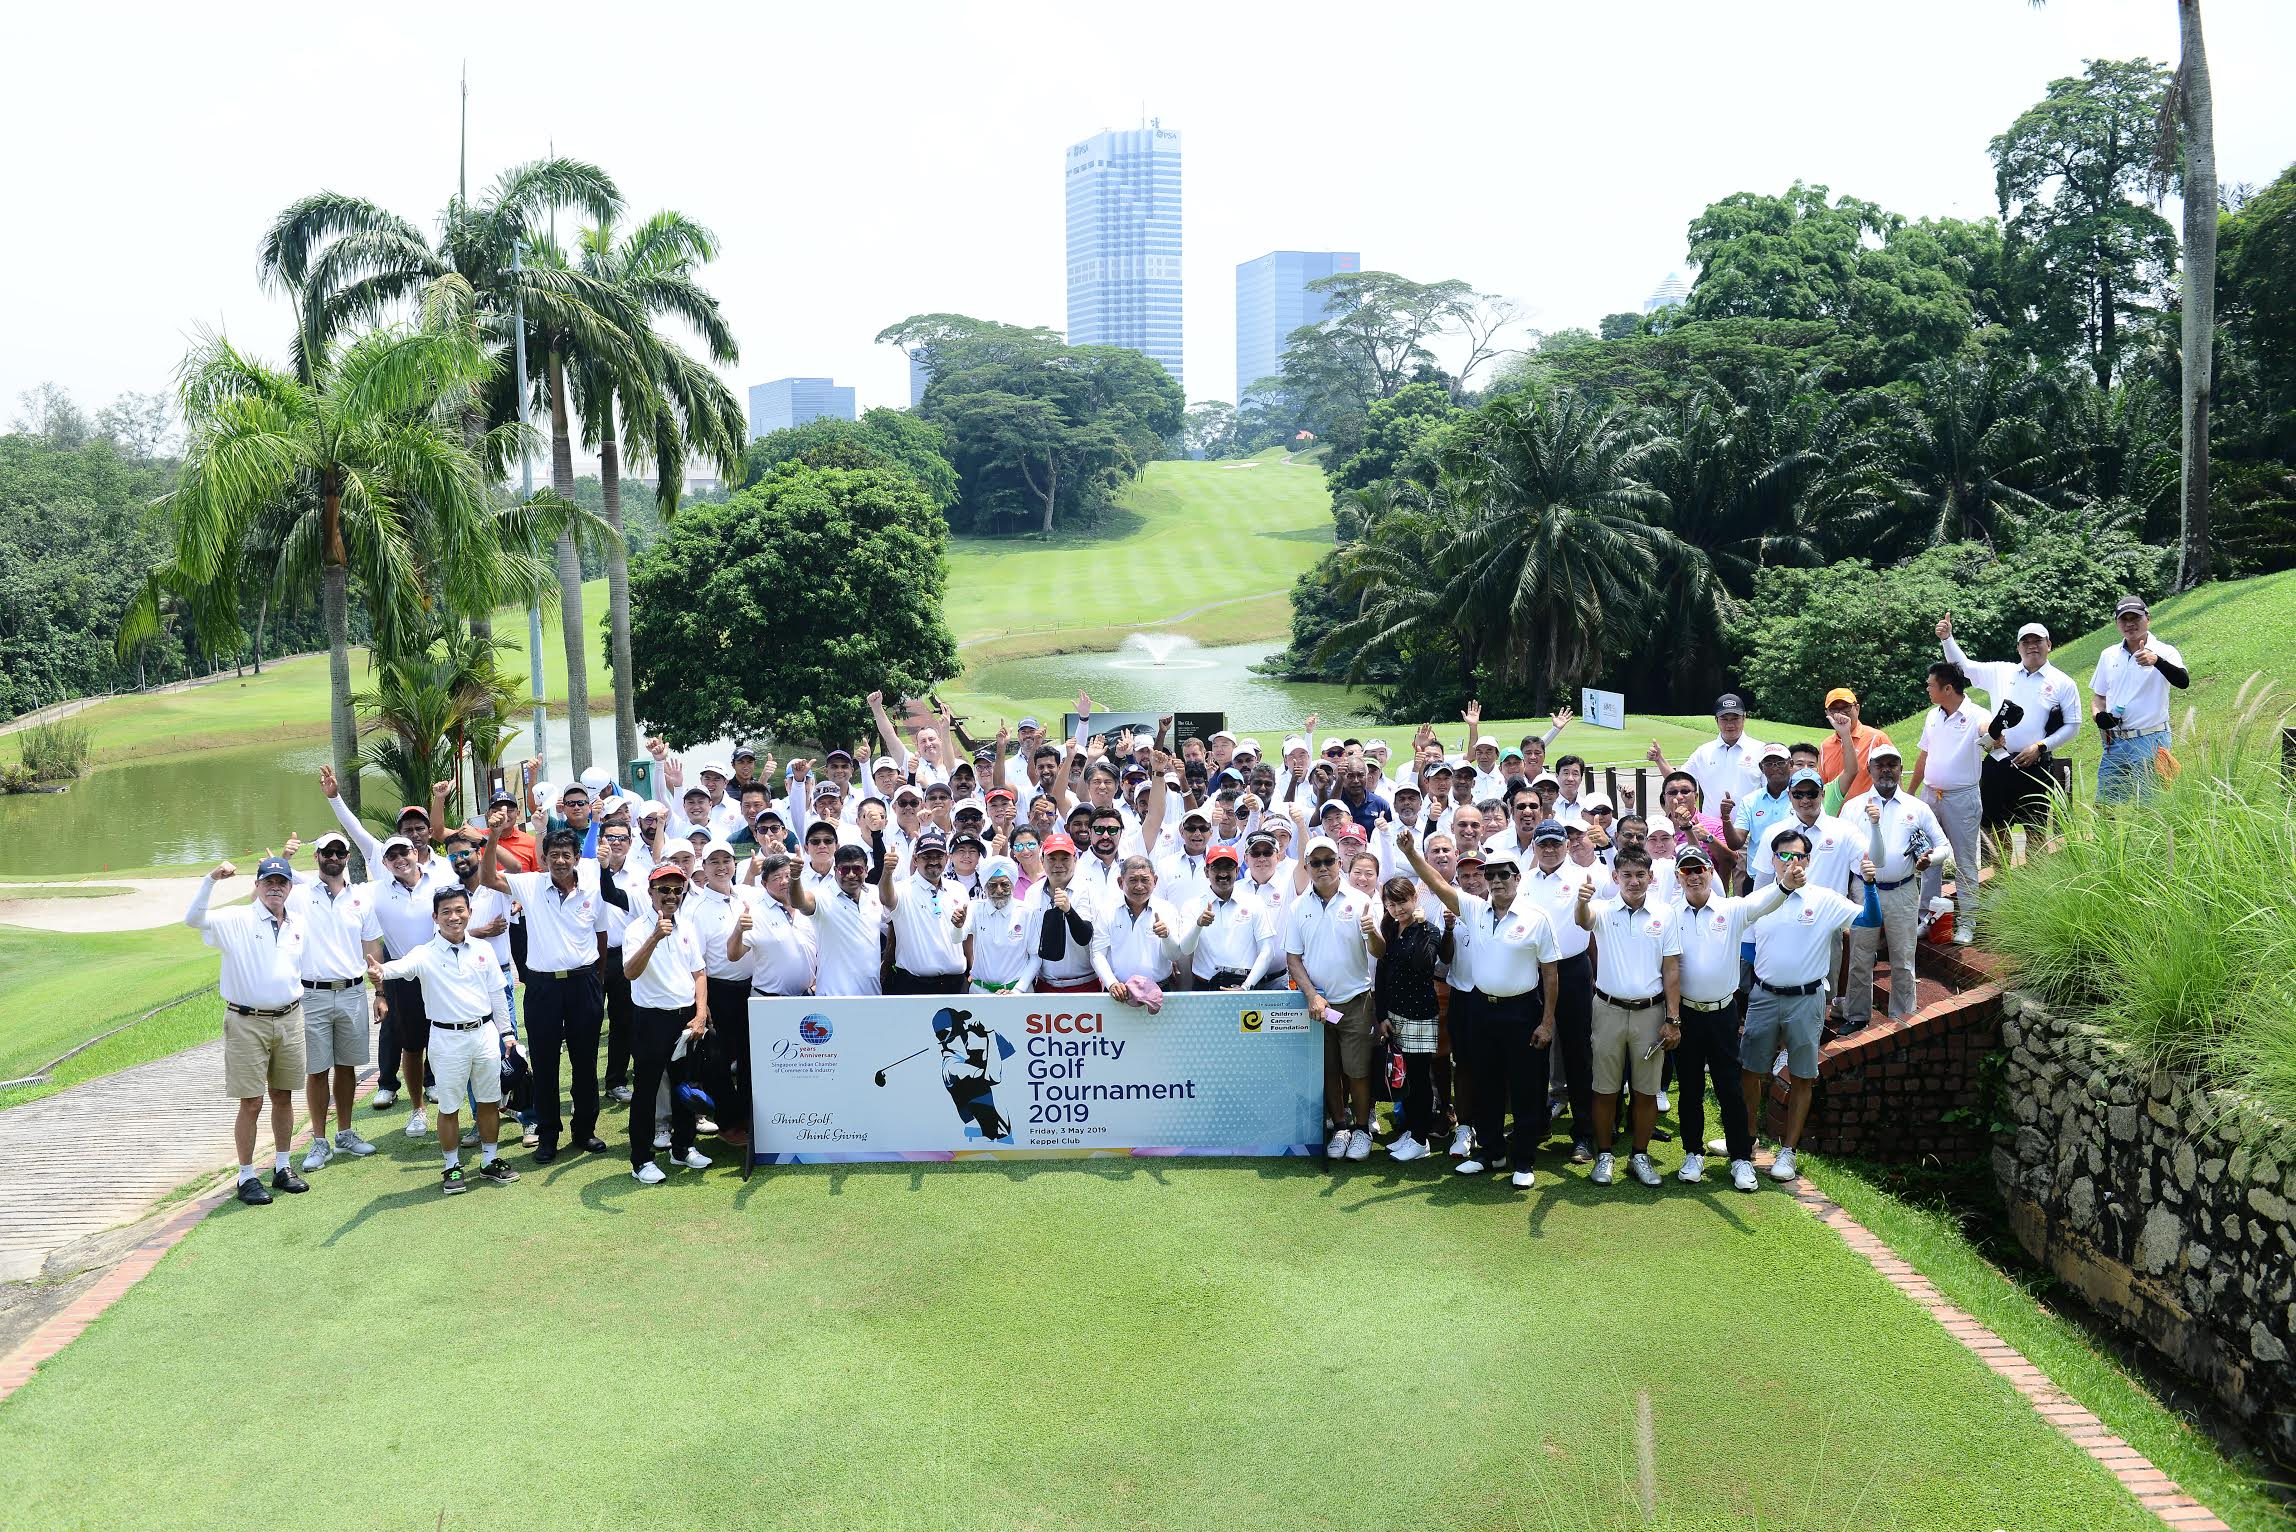 SICCI's inaugural Charity Golf Tournament raised SGD100,000 for the Children's Cancer Foundation. Photo courtesy: Singapore Indian Chamber of Commerce & Industry